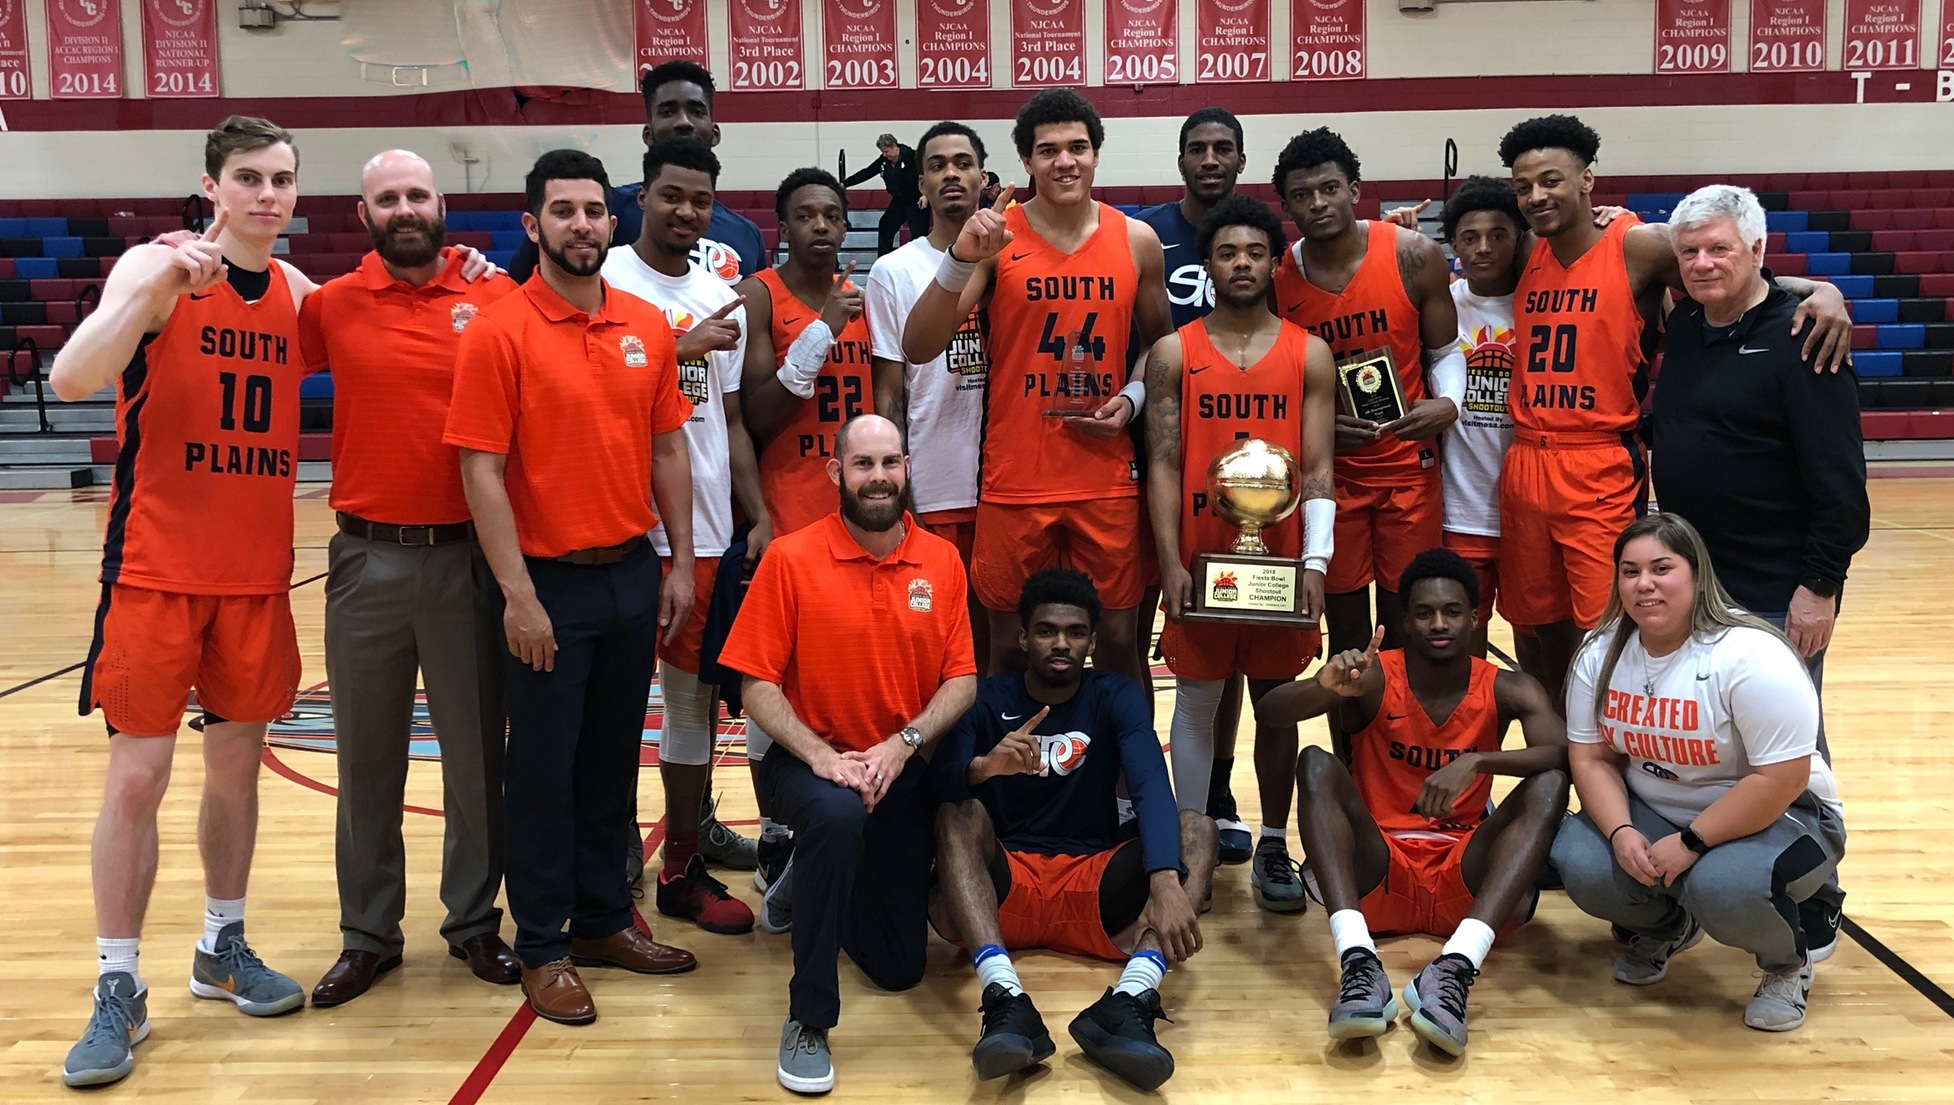 No. 1 South Plains defeats Seward County 72-64 to capture Fiesta Bowl Junior College Shootout championship Saturday in Arizona